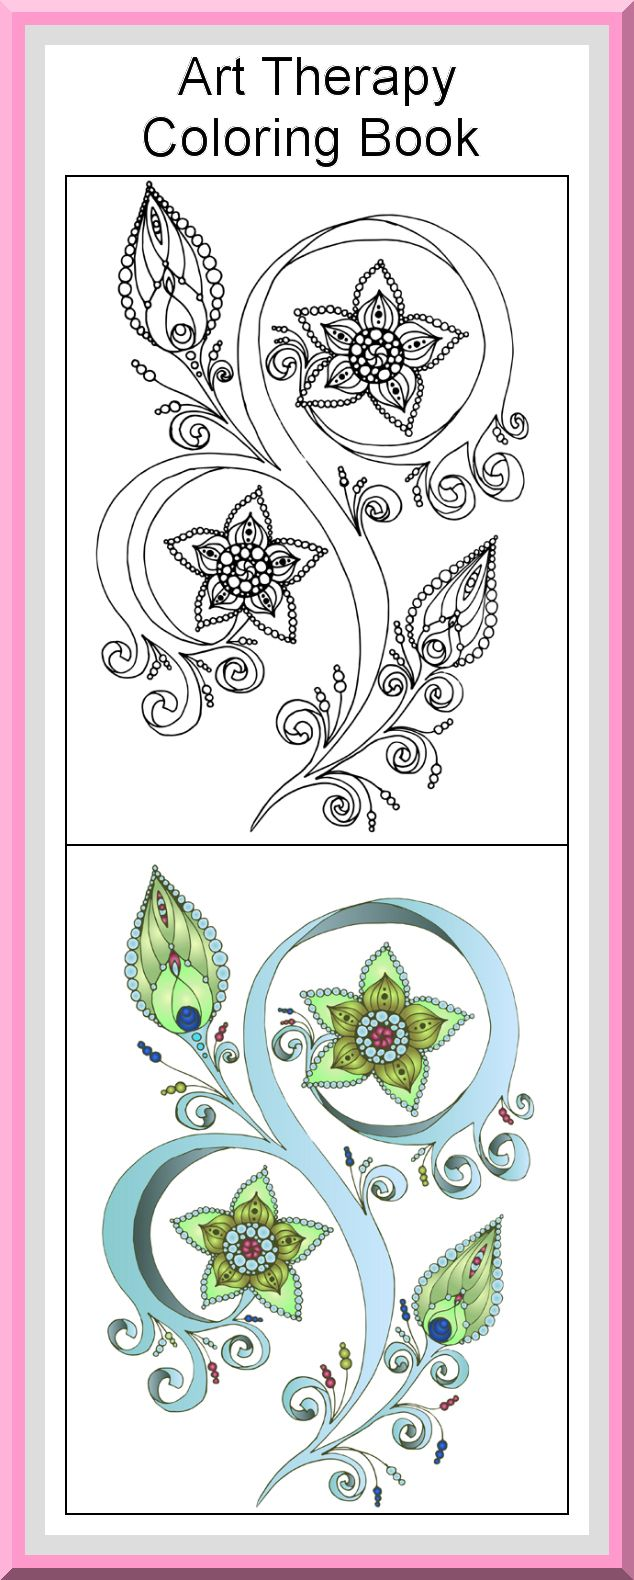 30 Printable Coloring Pages Outlines Color Examples Printable Download Pages Art Therapy Col Printable Art Therapy Coloring Books Art Therapy Coloring Book